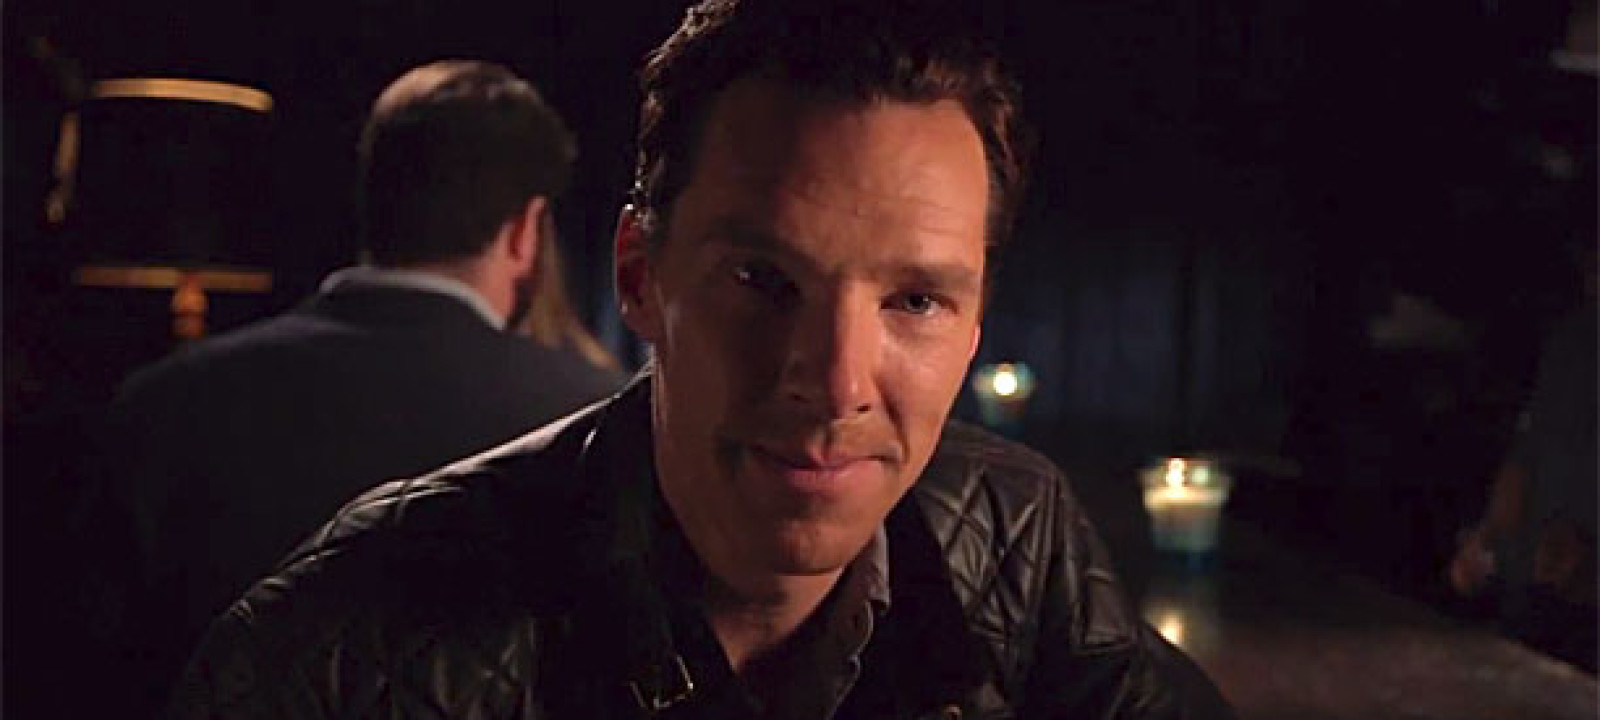 Benedict Cumberbatch on 'Jimmy Kimmel Live'